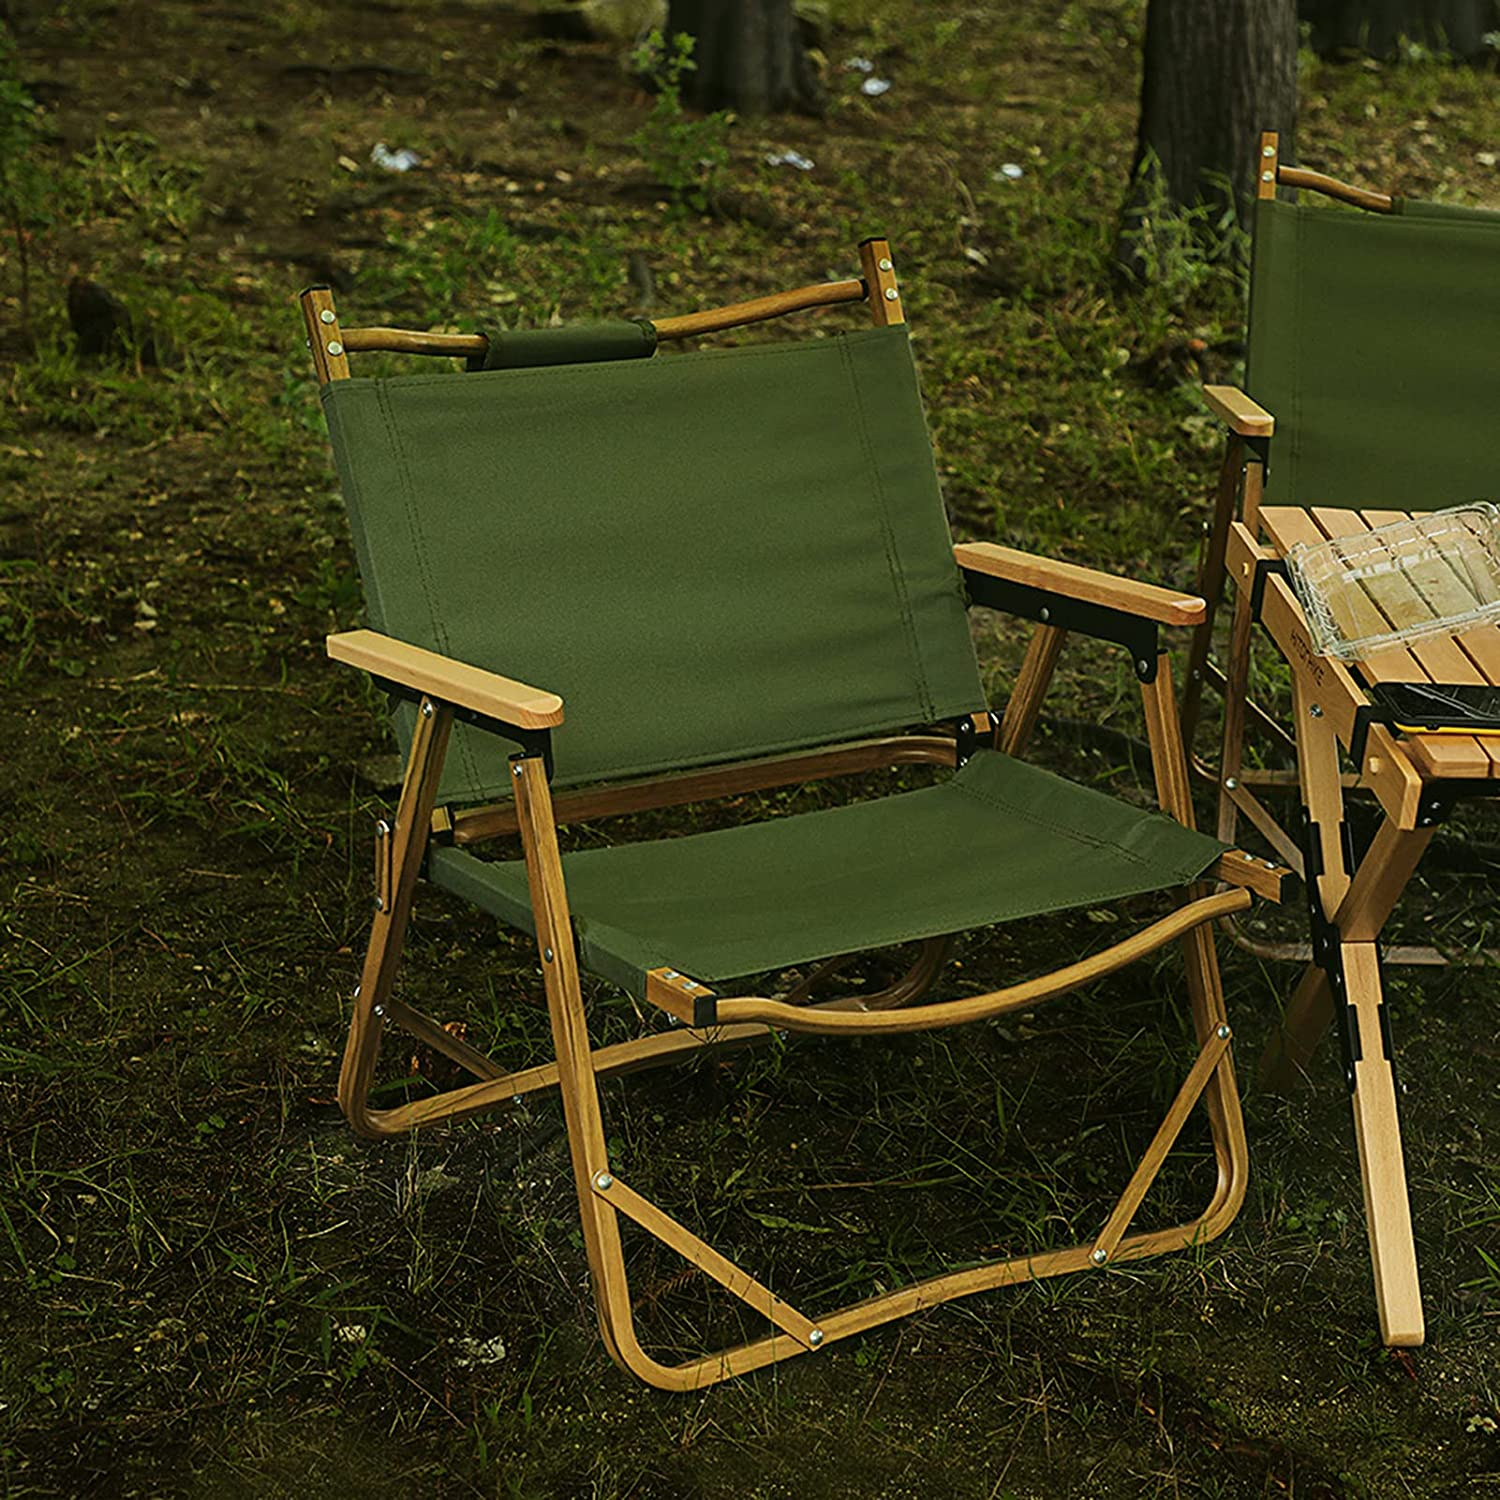 HAPPY-HAT Garden Chair Adult Manufacturer regenerated product Good B Bargain Long-Lasting Camping